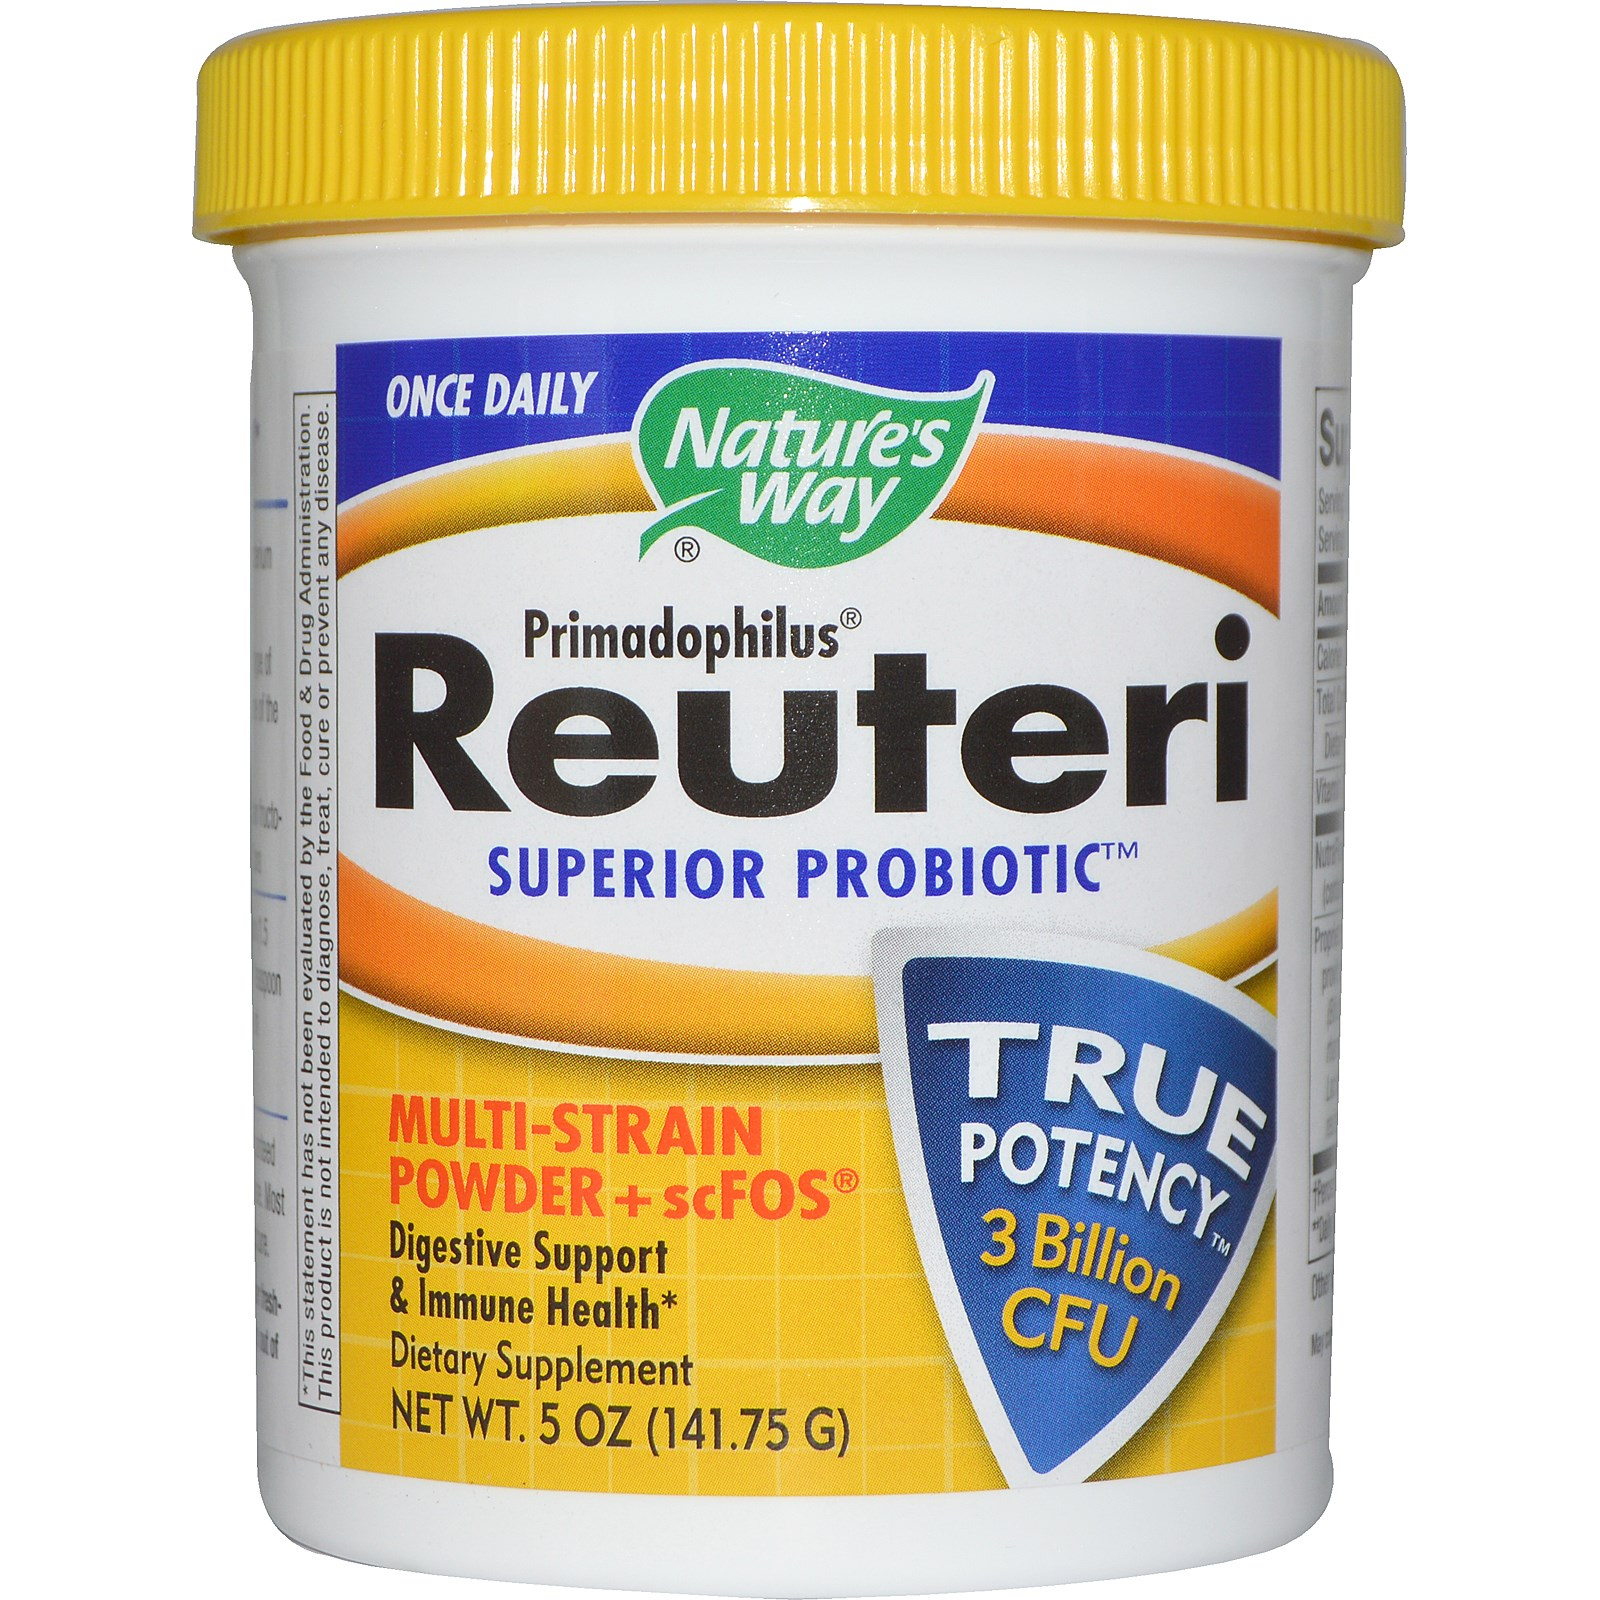 Nature's Way Primadophilus Reuteri Pearls - 60 unit